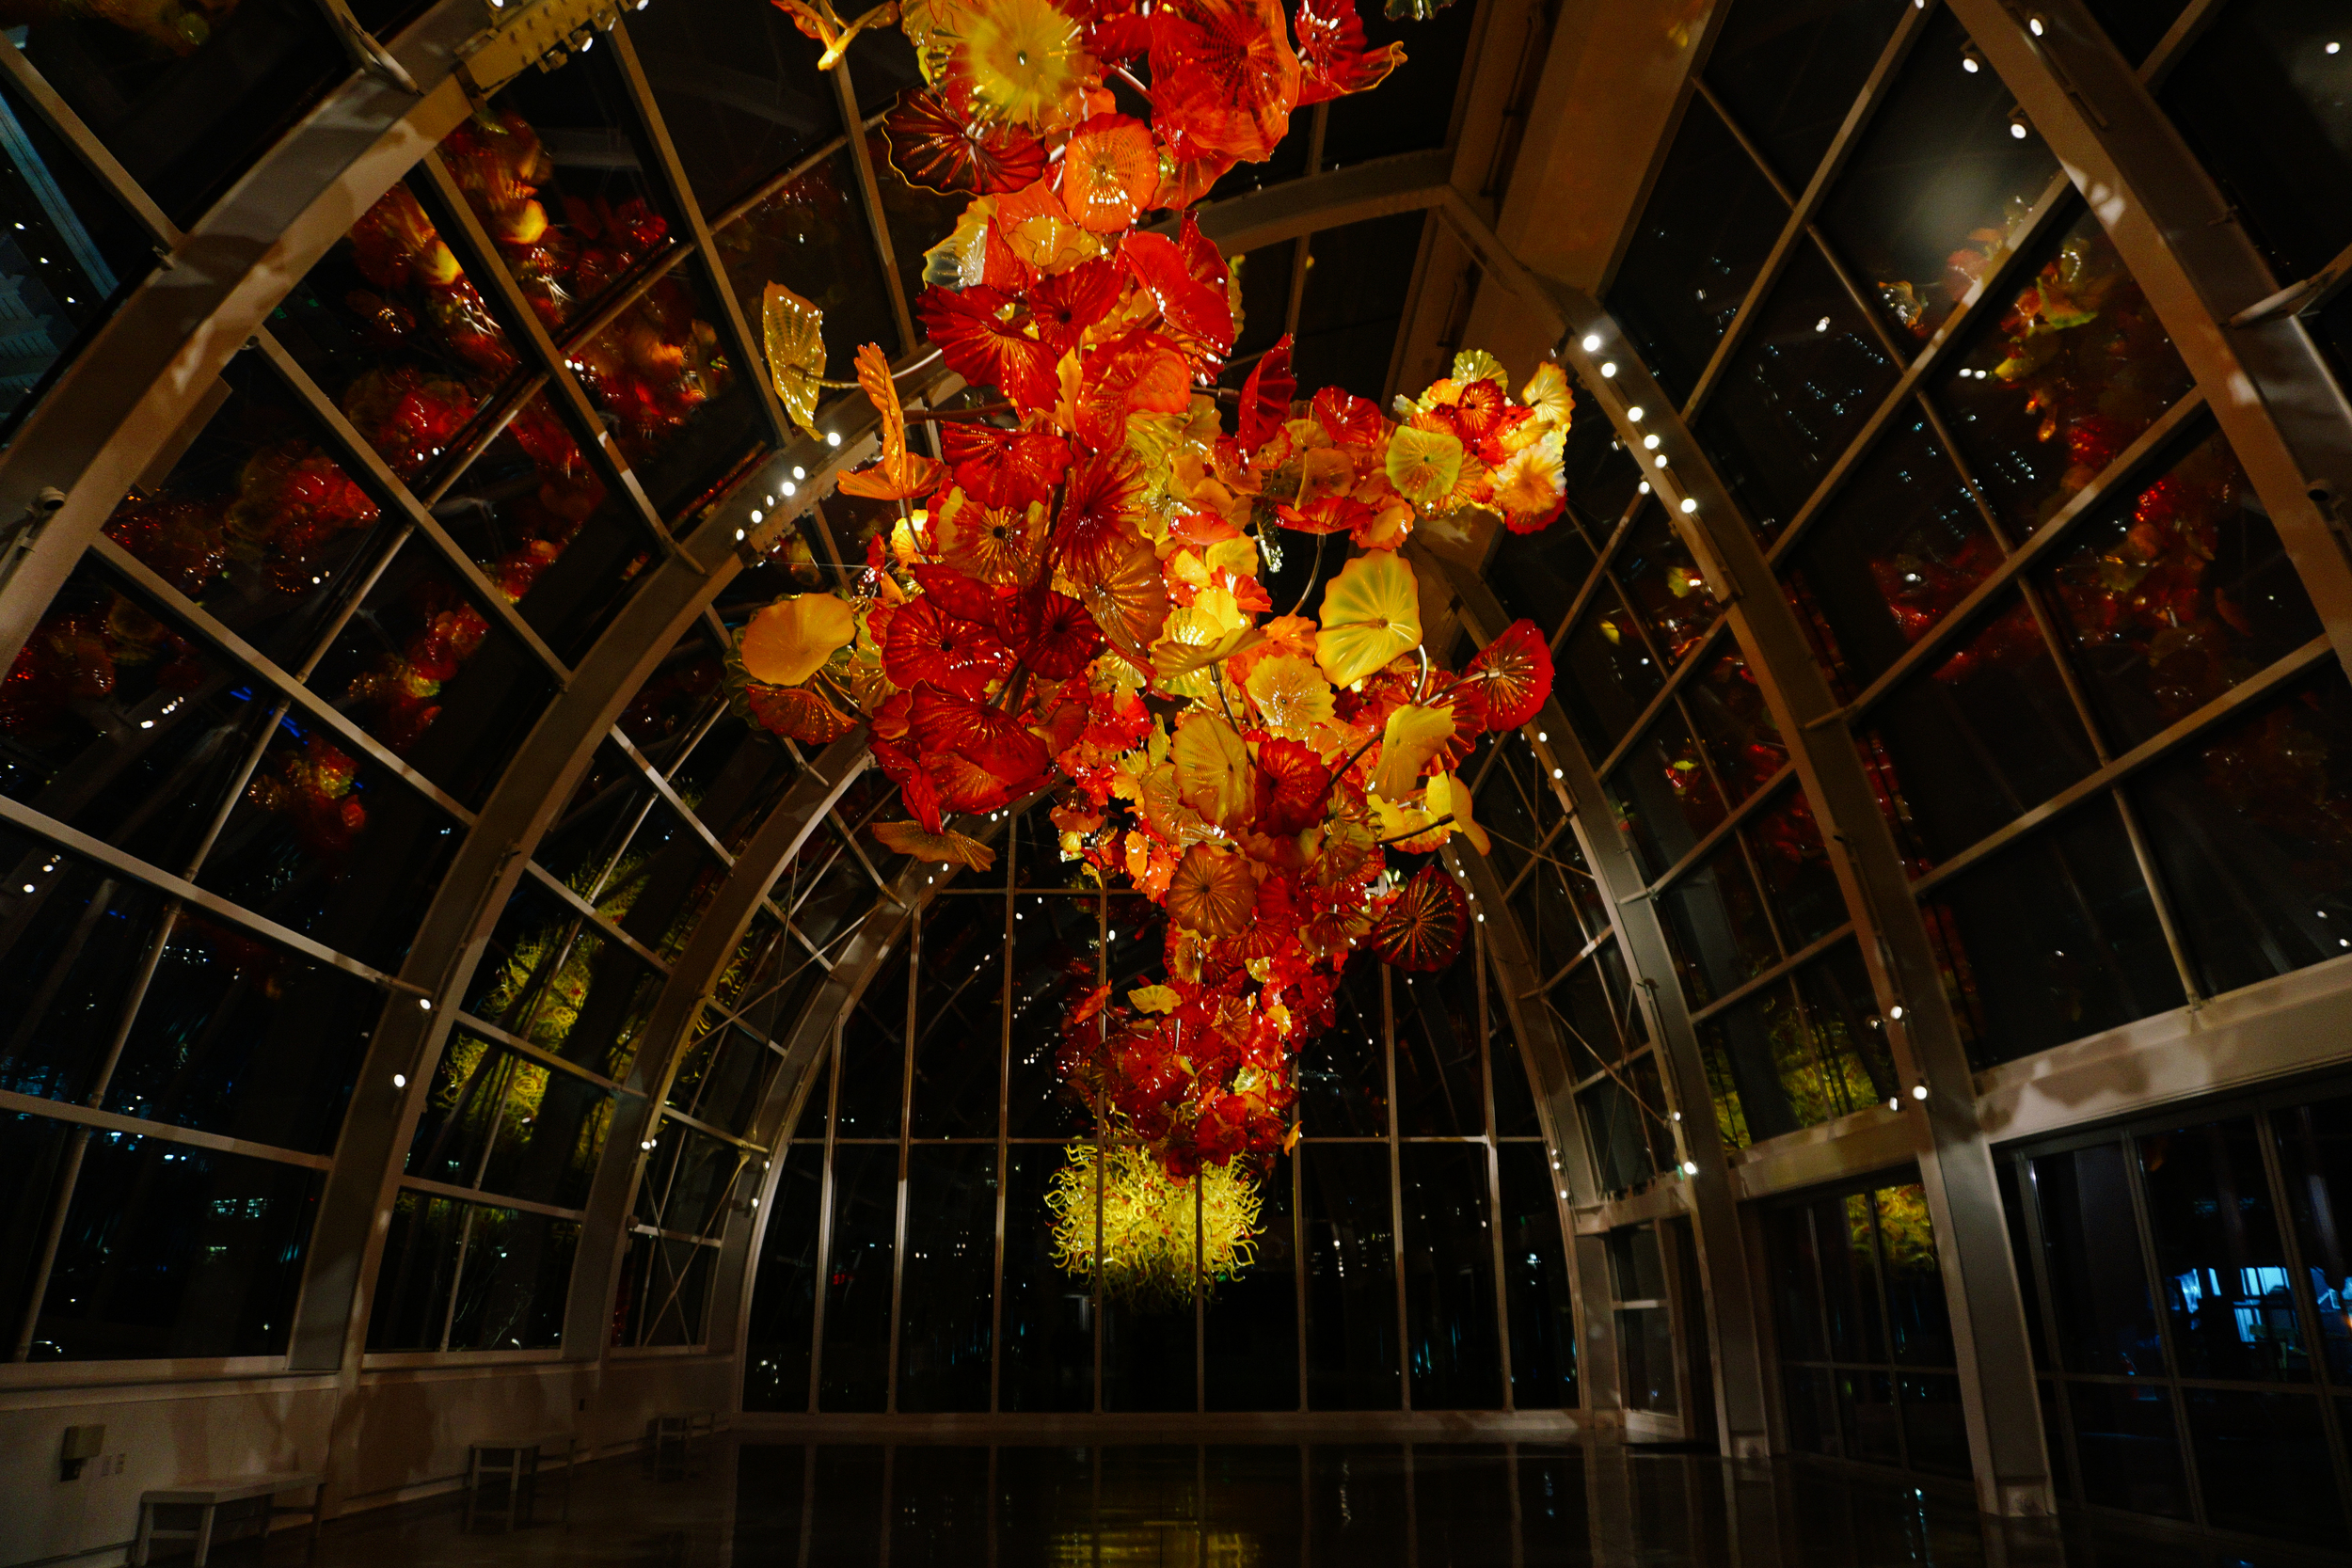 Chihuly Glasshouse at night.